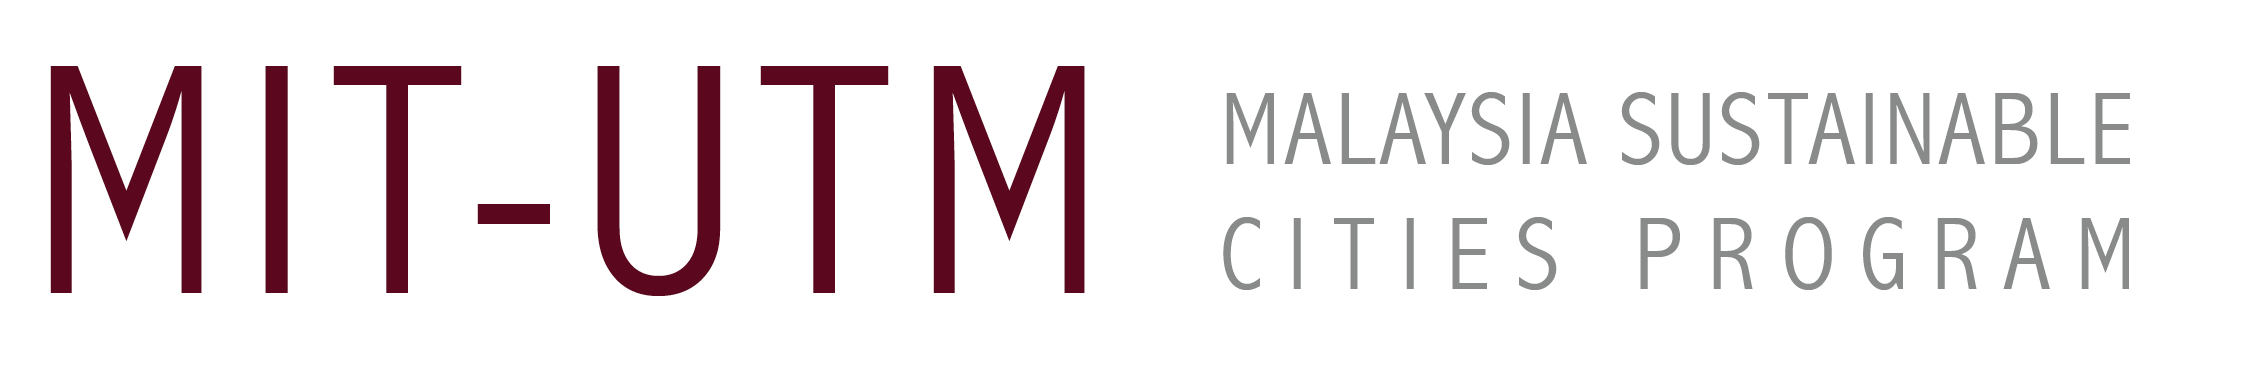 Malaysia Sustainable Cities logo